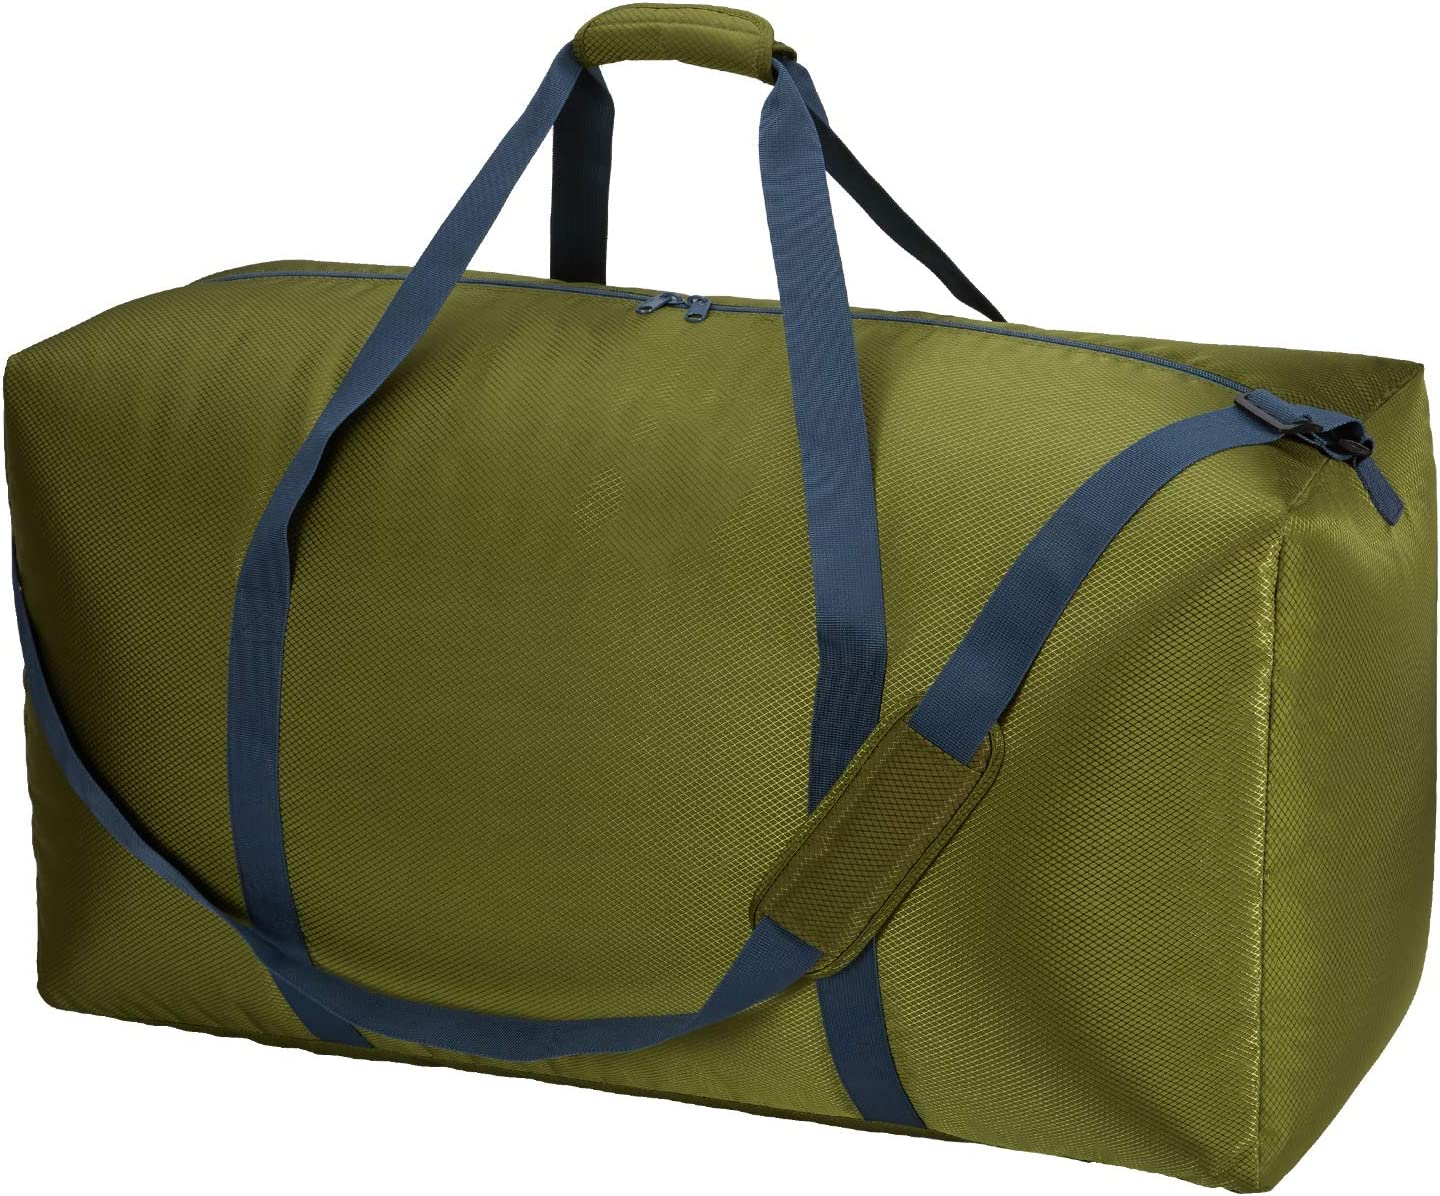 32.5 inch Extra Large Travel Duffle Bag, Oversized Luggage Bag Lightweight (Green)